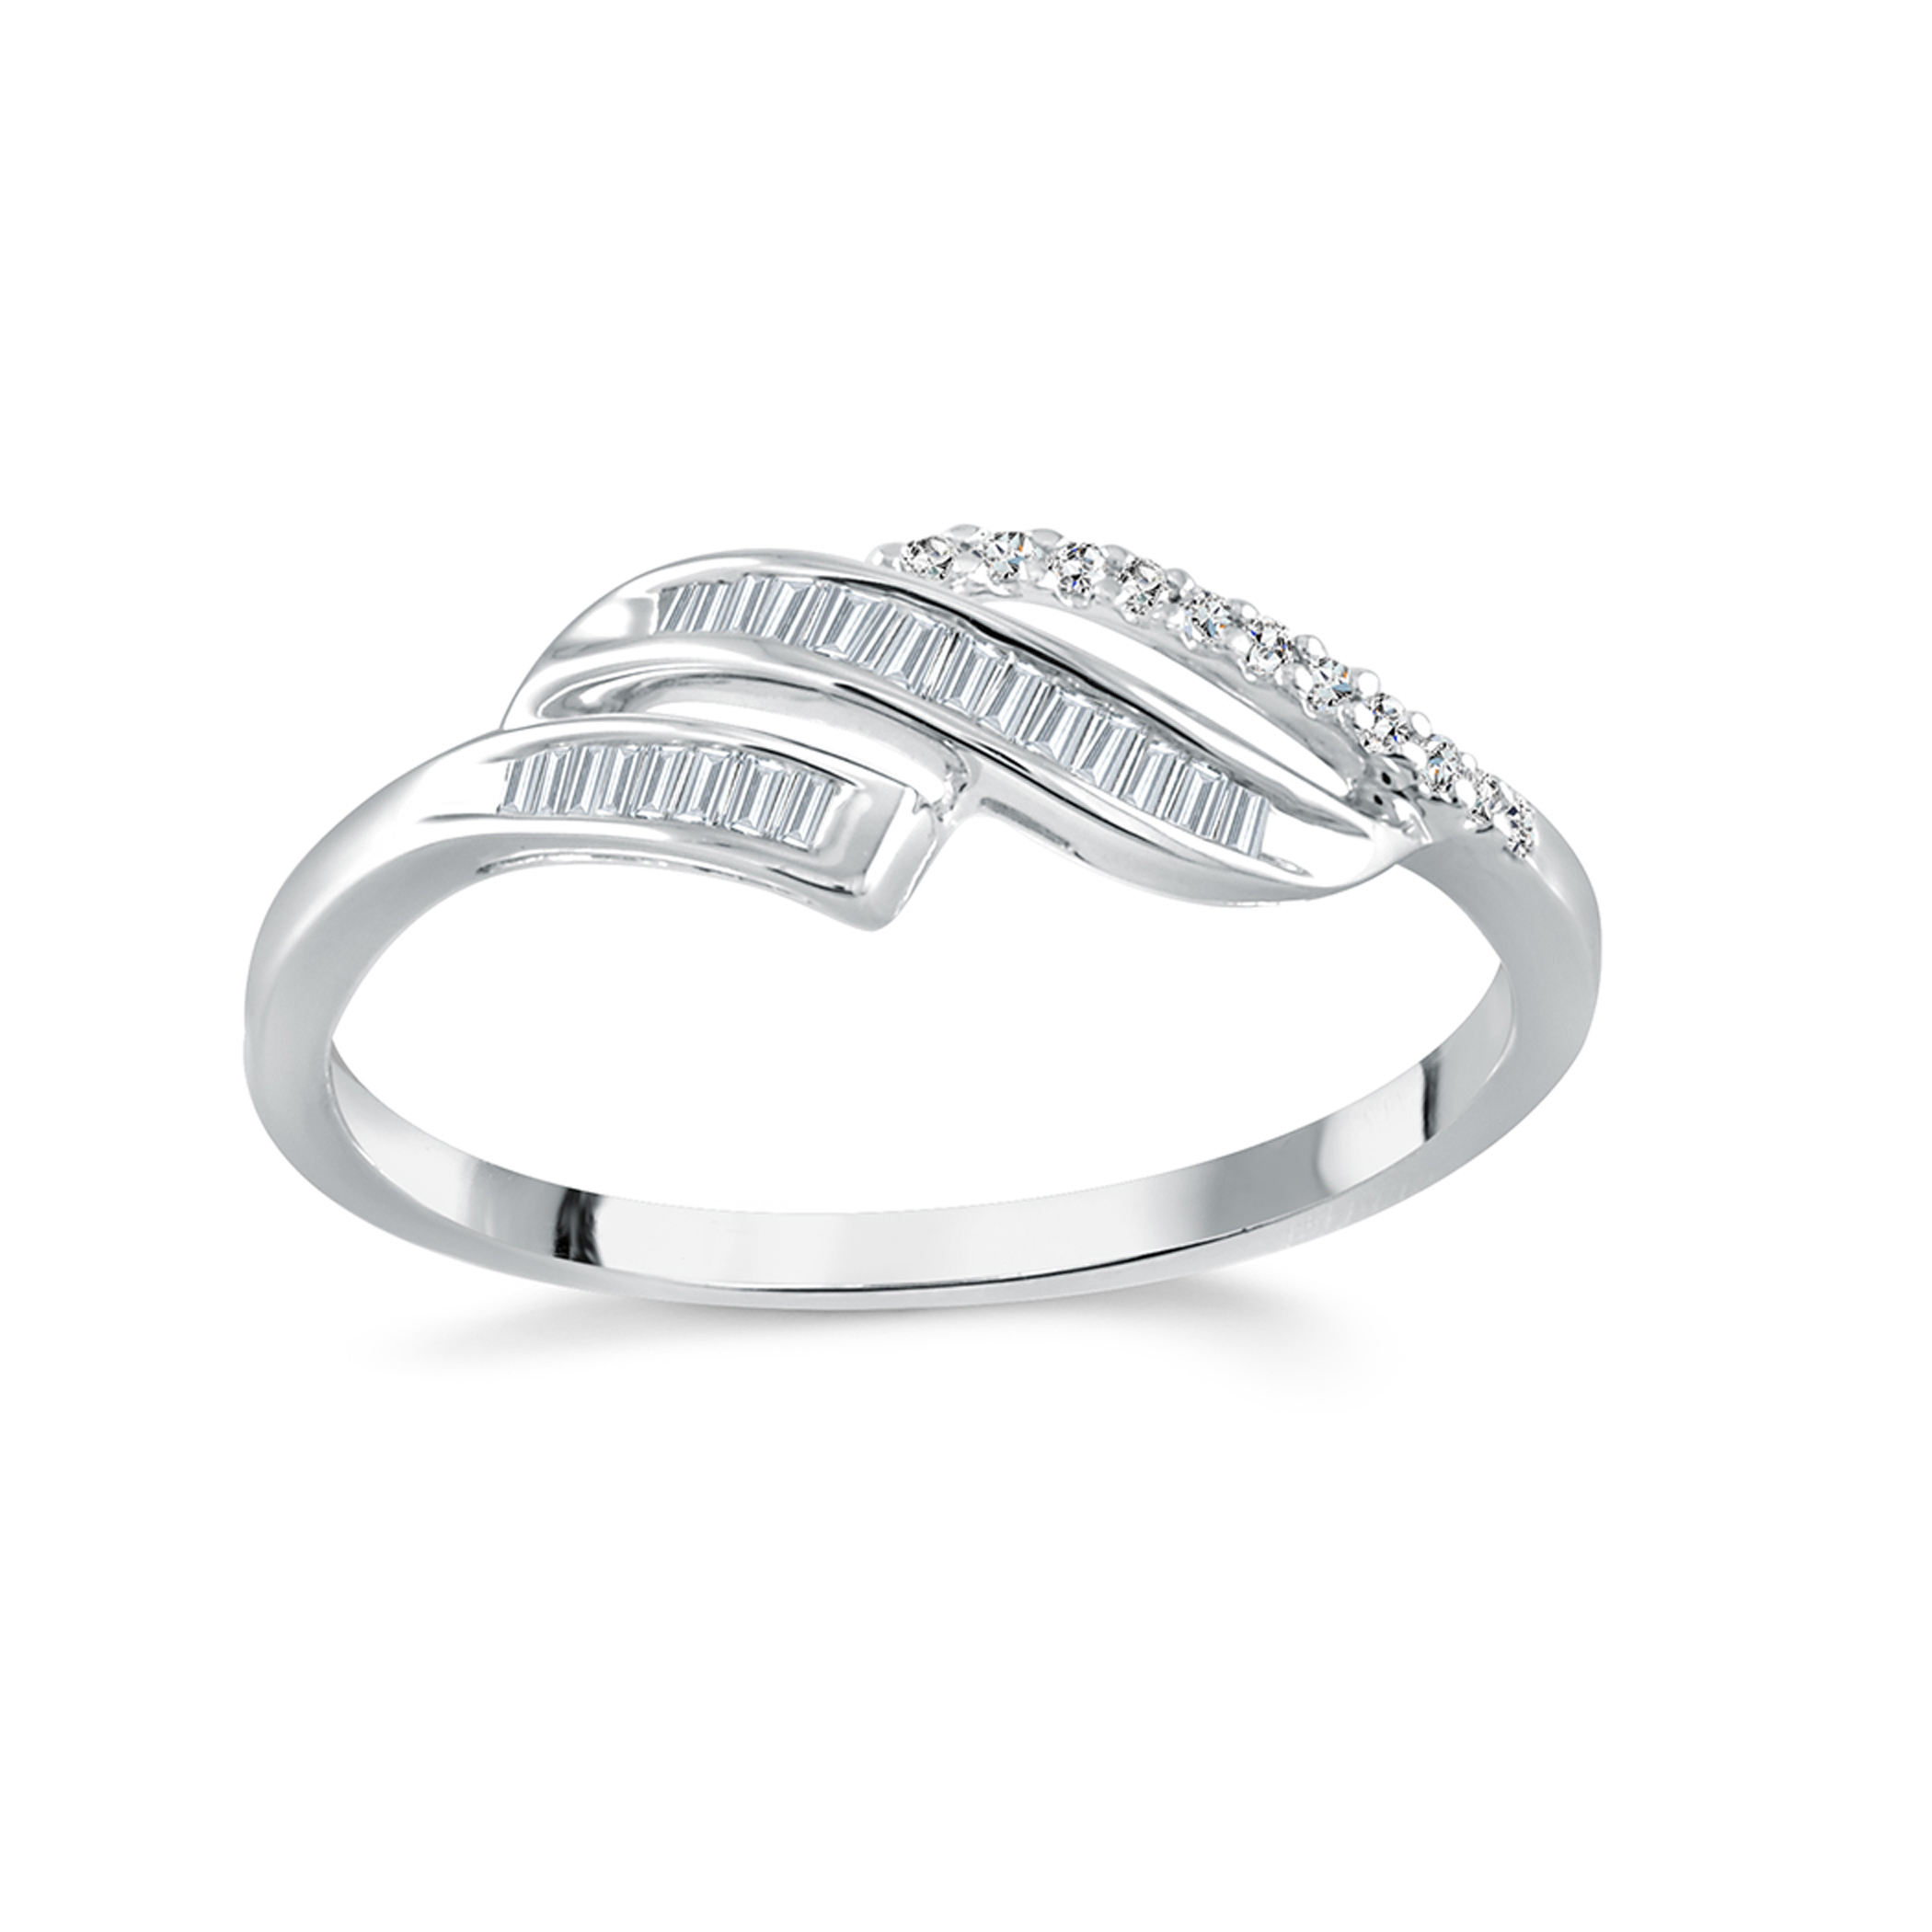 Bague sertie de diamants totalisant 0.12 Carats Pureté:I Couleur:GH - en Or blanc 10K